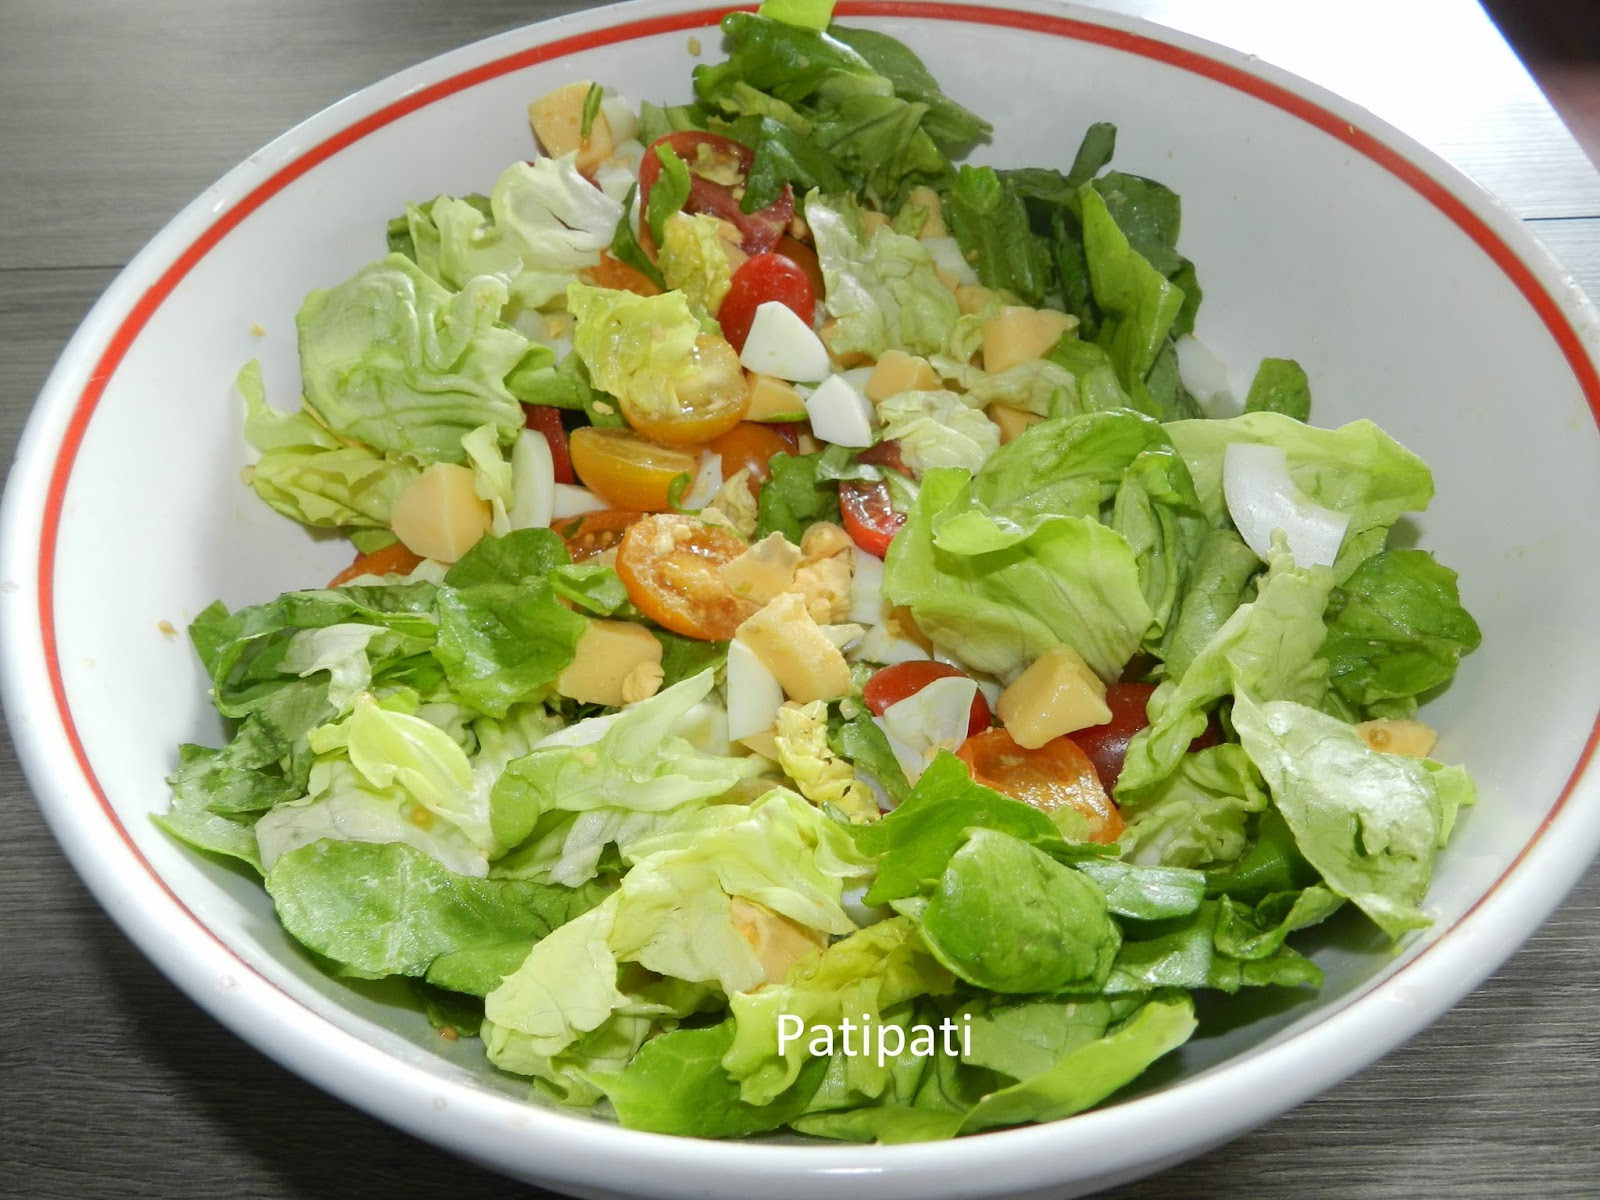 Salade pour accompagner votre barbecue